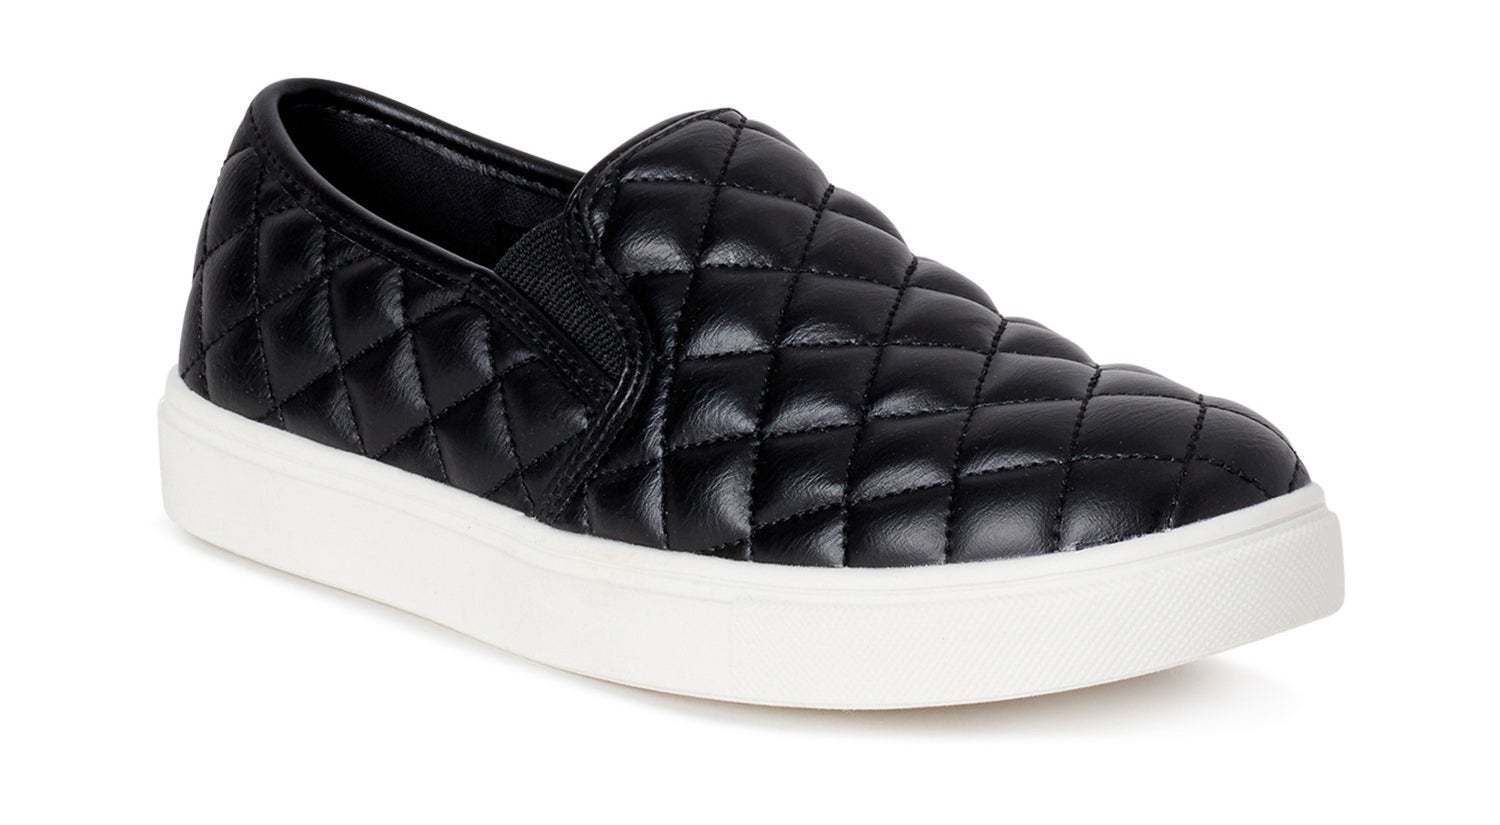 The quilted black sneaker